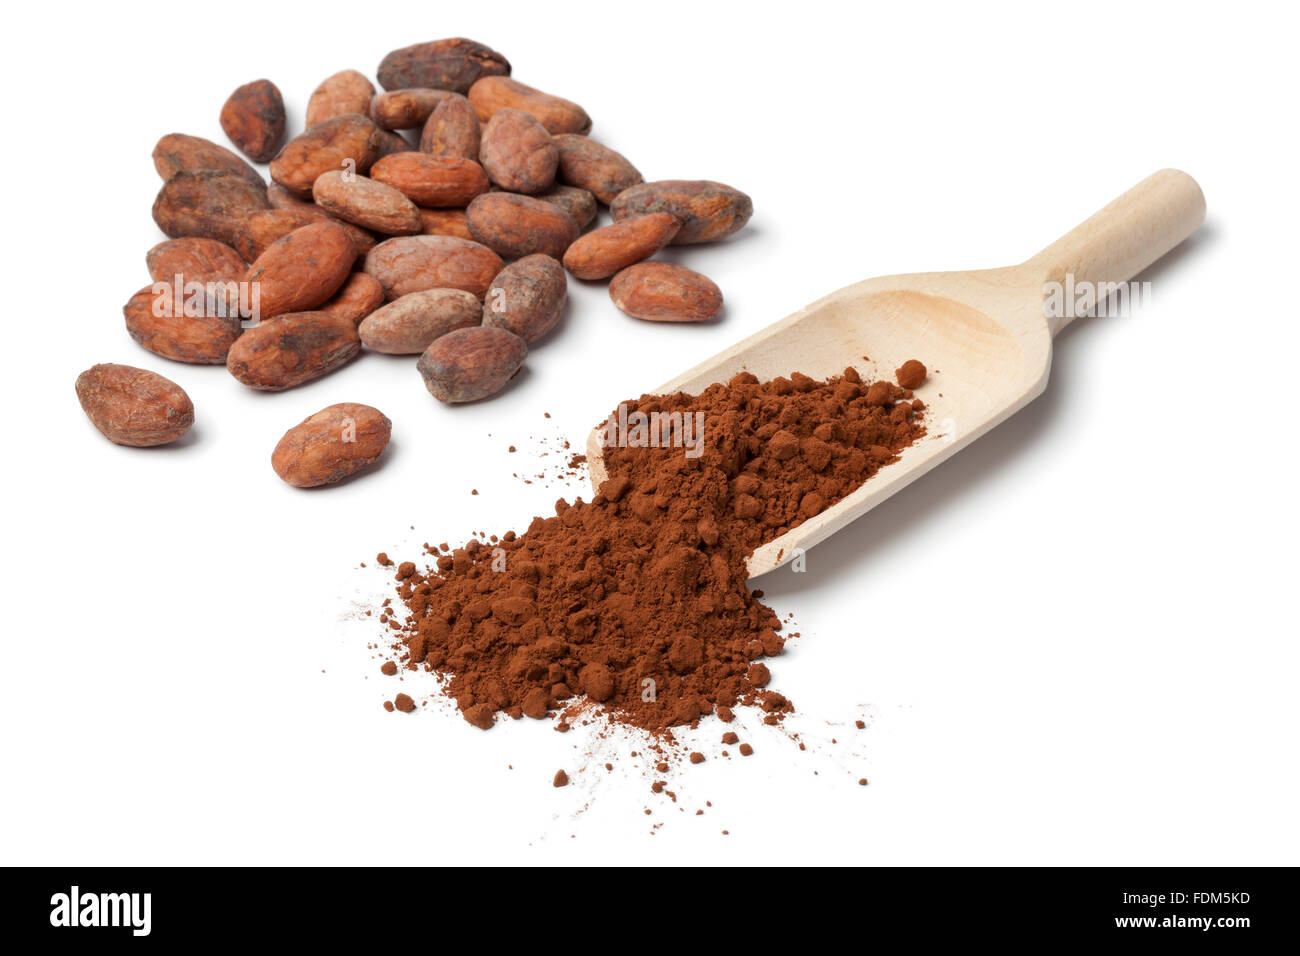 Fair trade cocao beans and cocao on white background - Stock Image